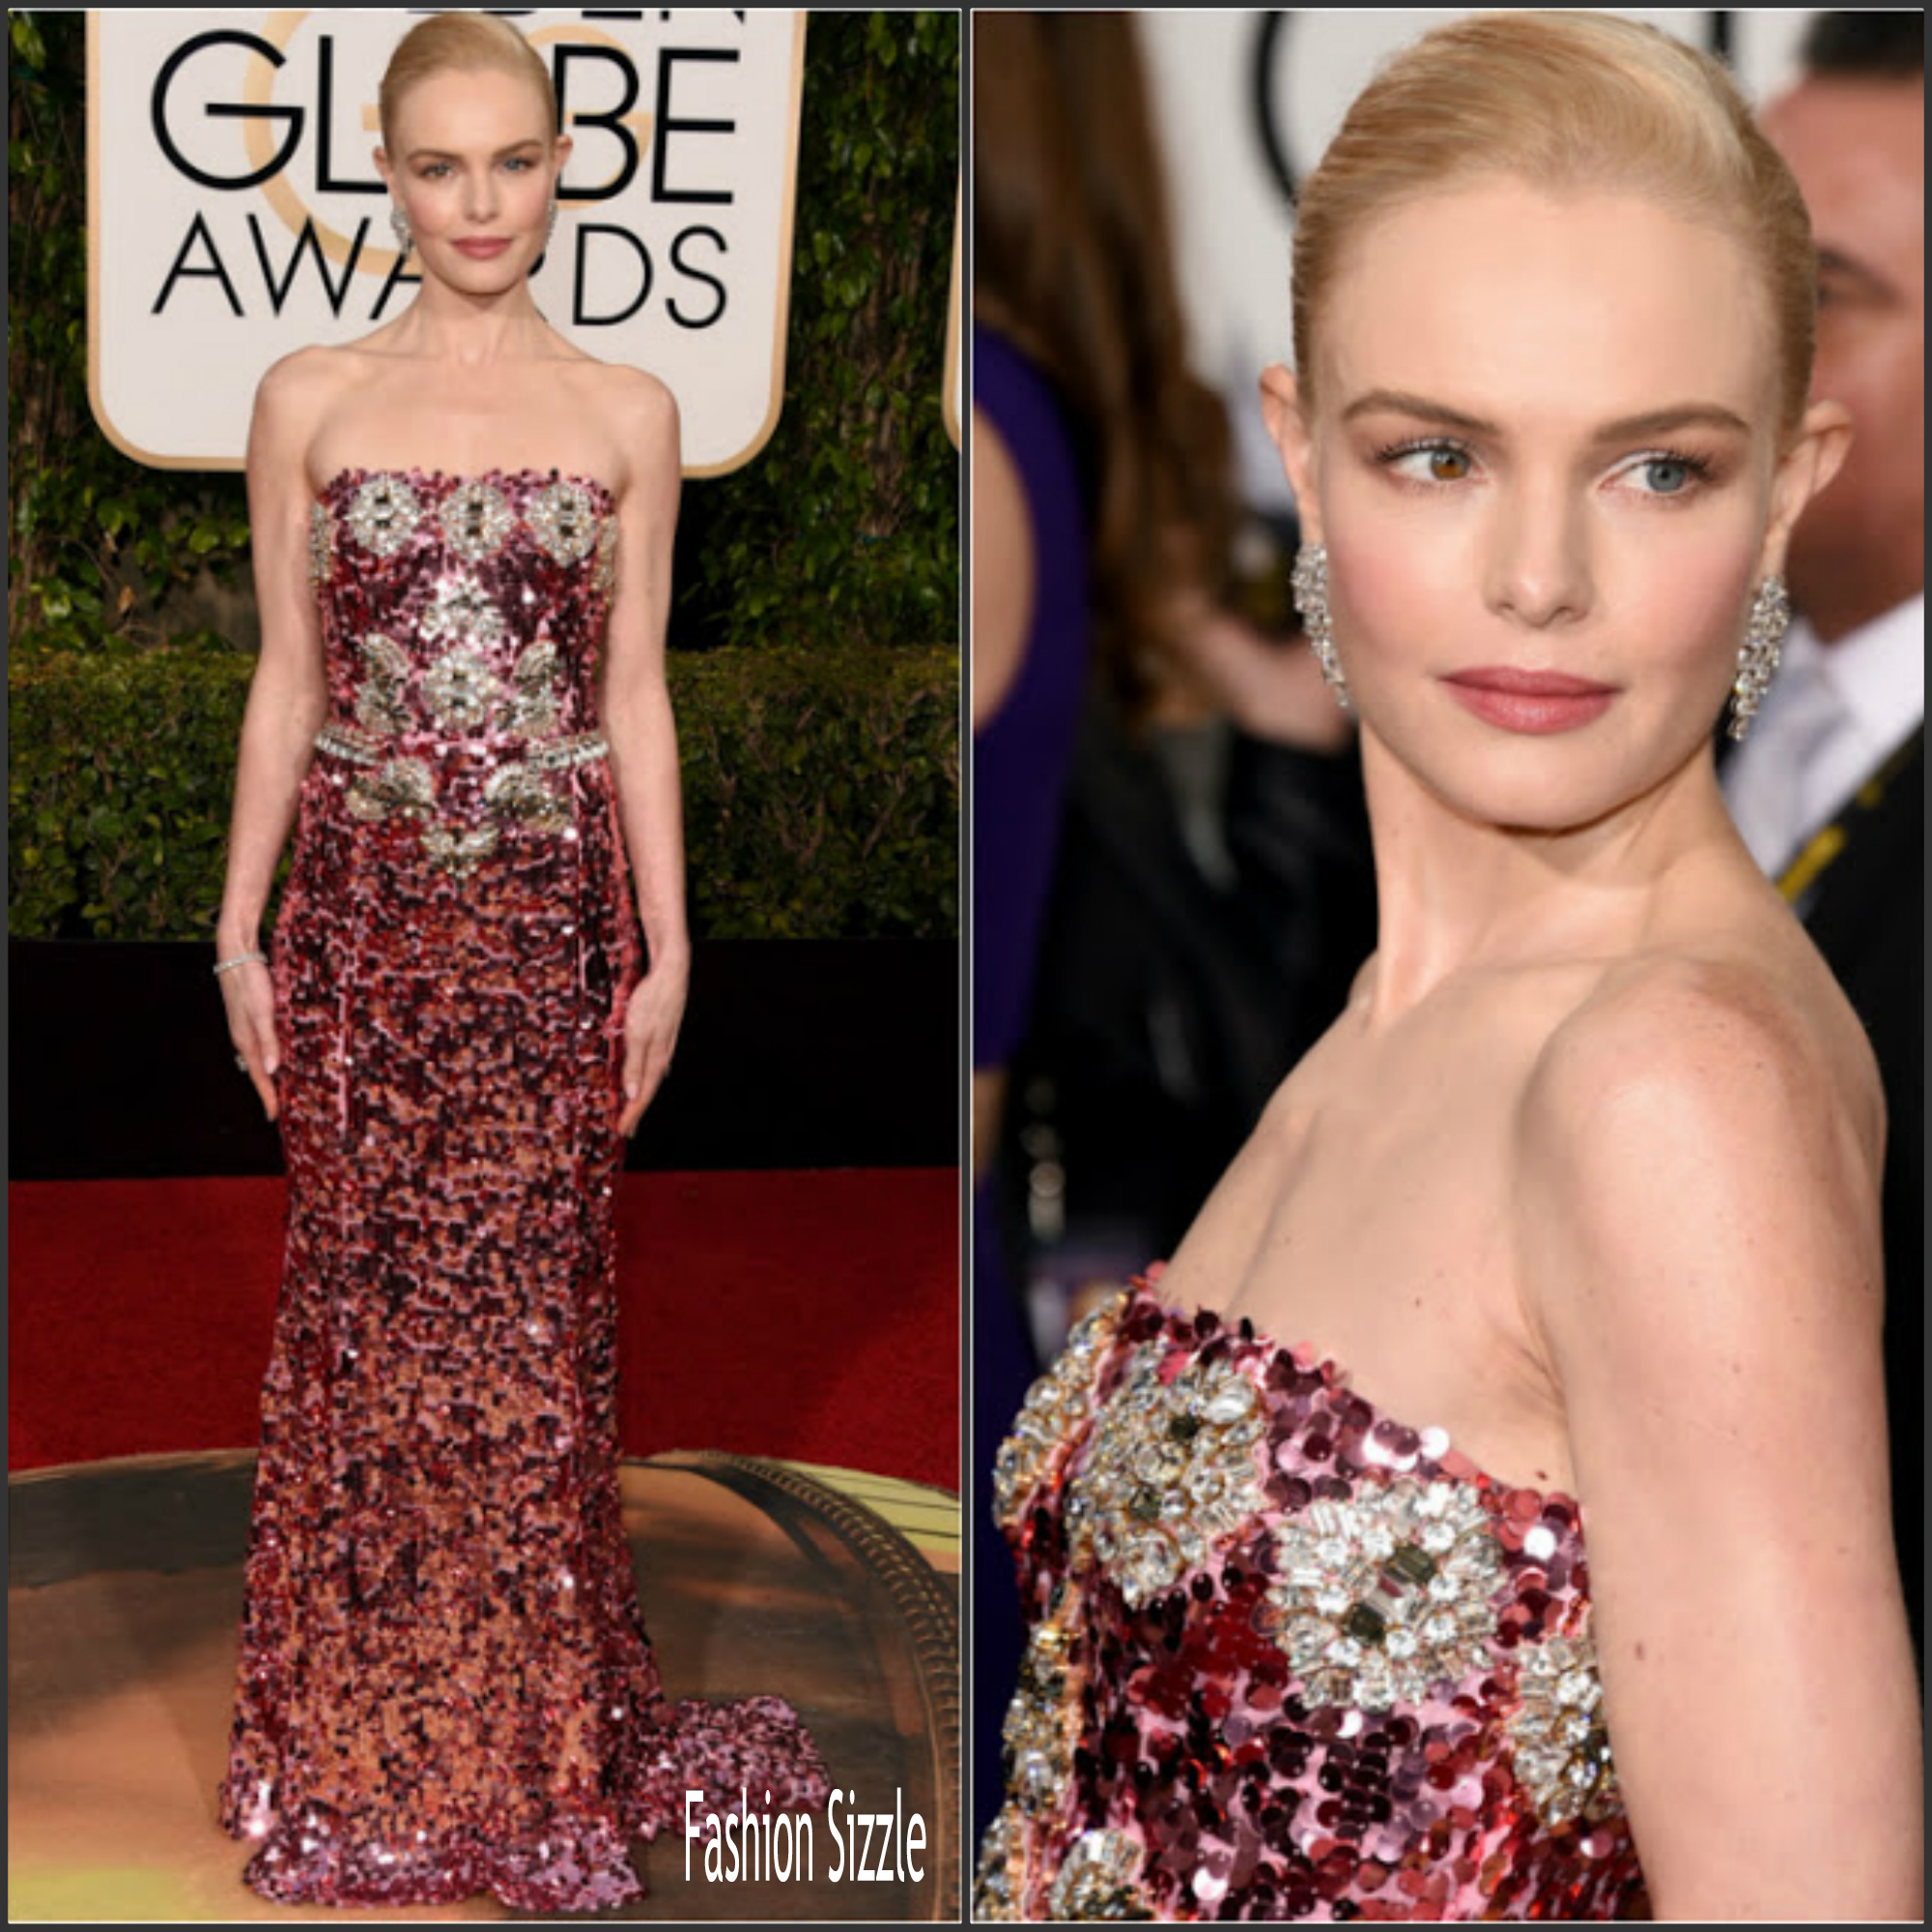 c22a096be918 Kate Bosworth in Dolce   Gabbana at the 2016 MET Gala - Fashionsizzle